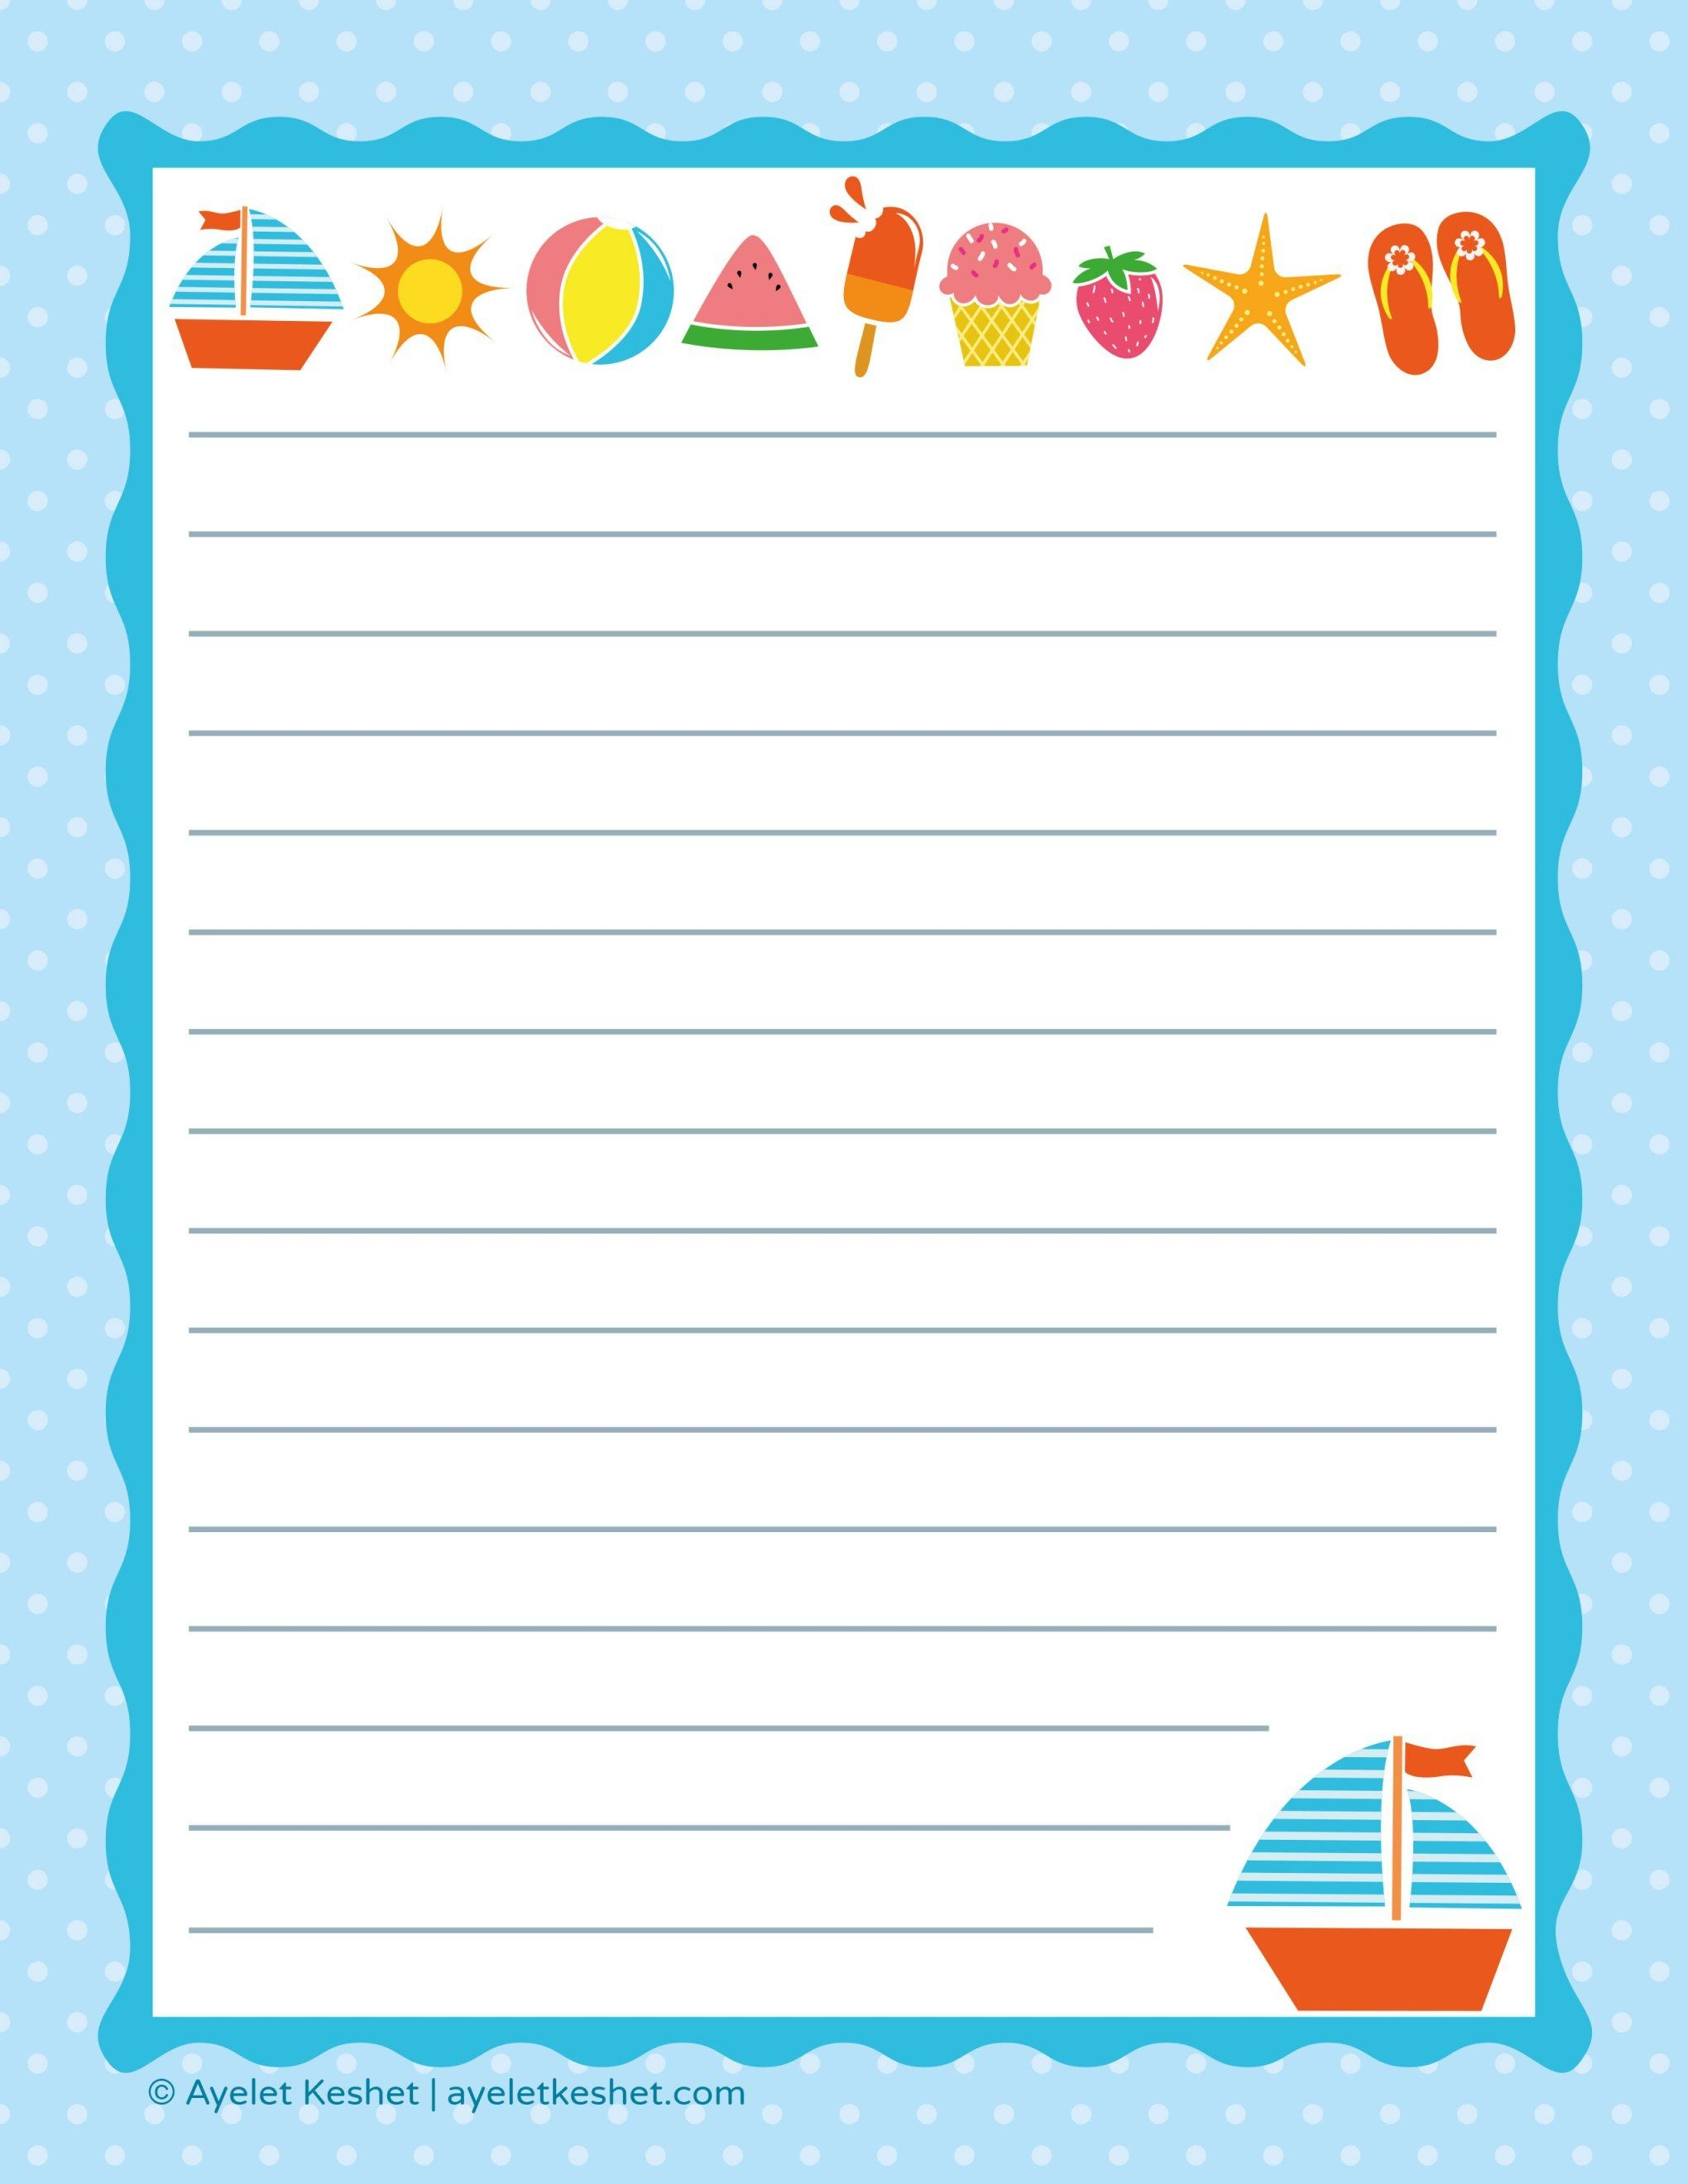 Free Printable Letter Paper | Printables To Go | Printable Letters - Free Printable Writing Paper For Adults